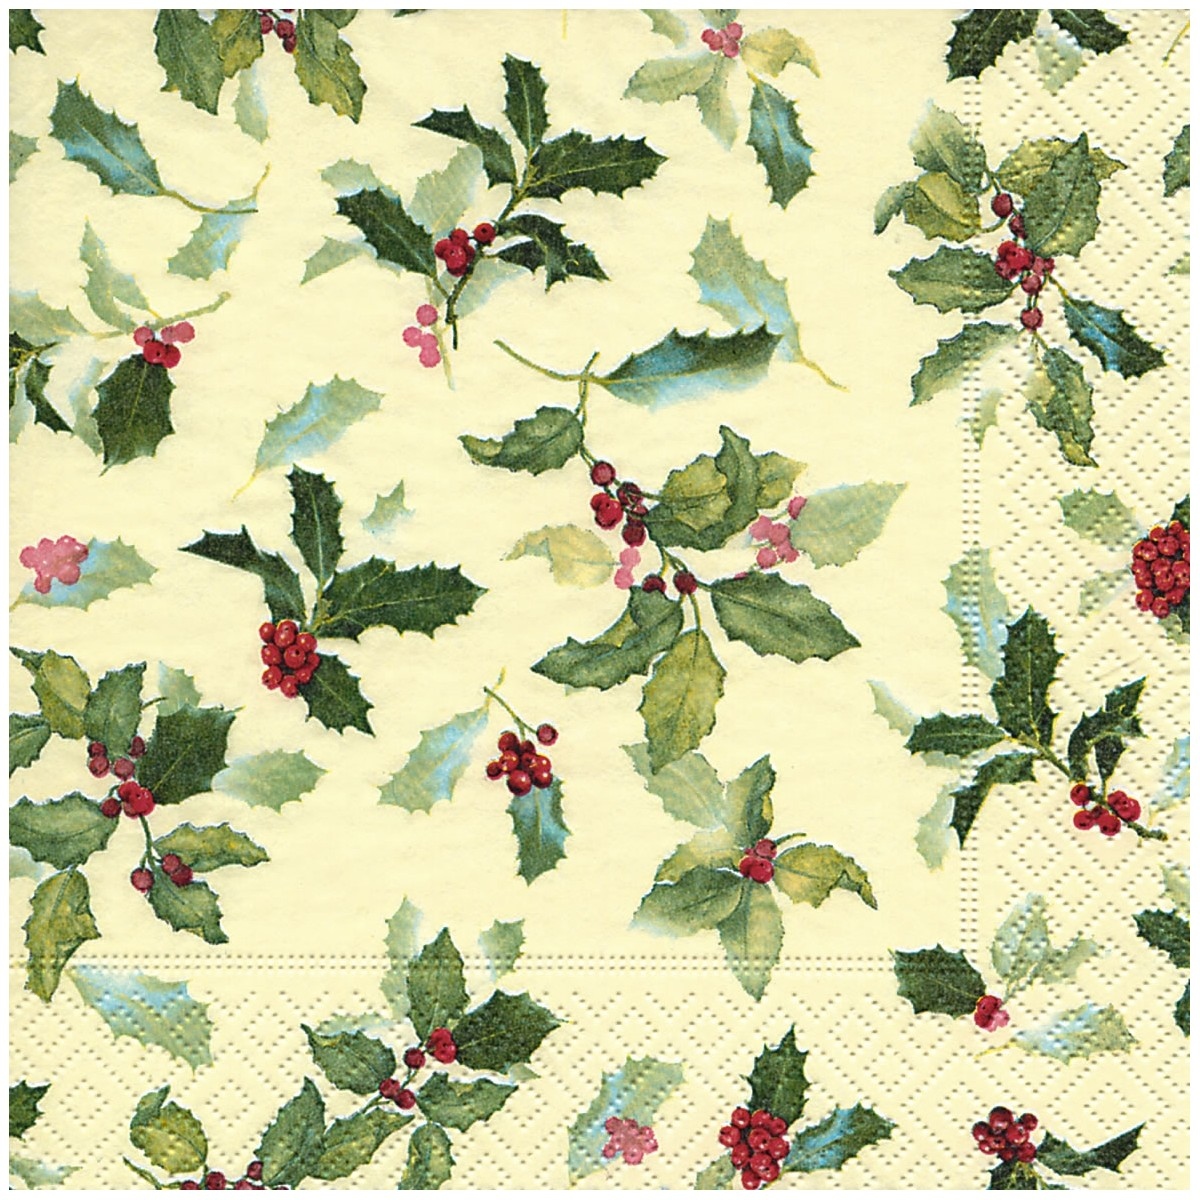 Christmas Napkins.Classic Ilex Holly Christmas Napkins 20pk 33cm